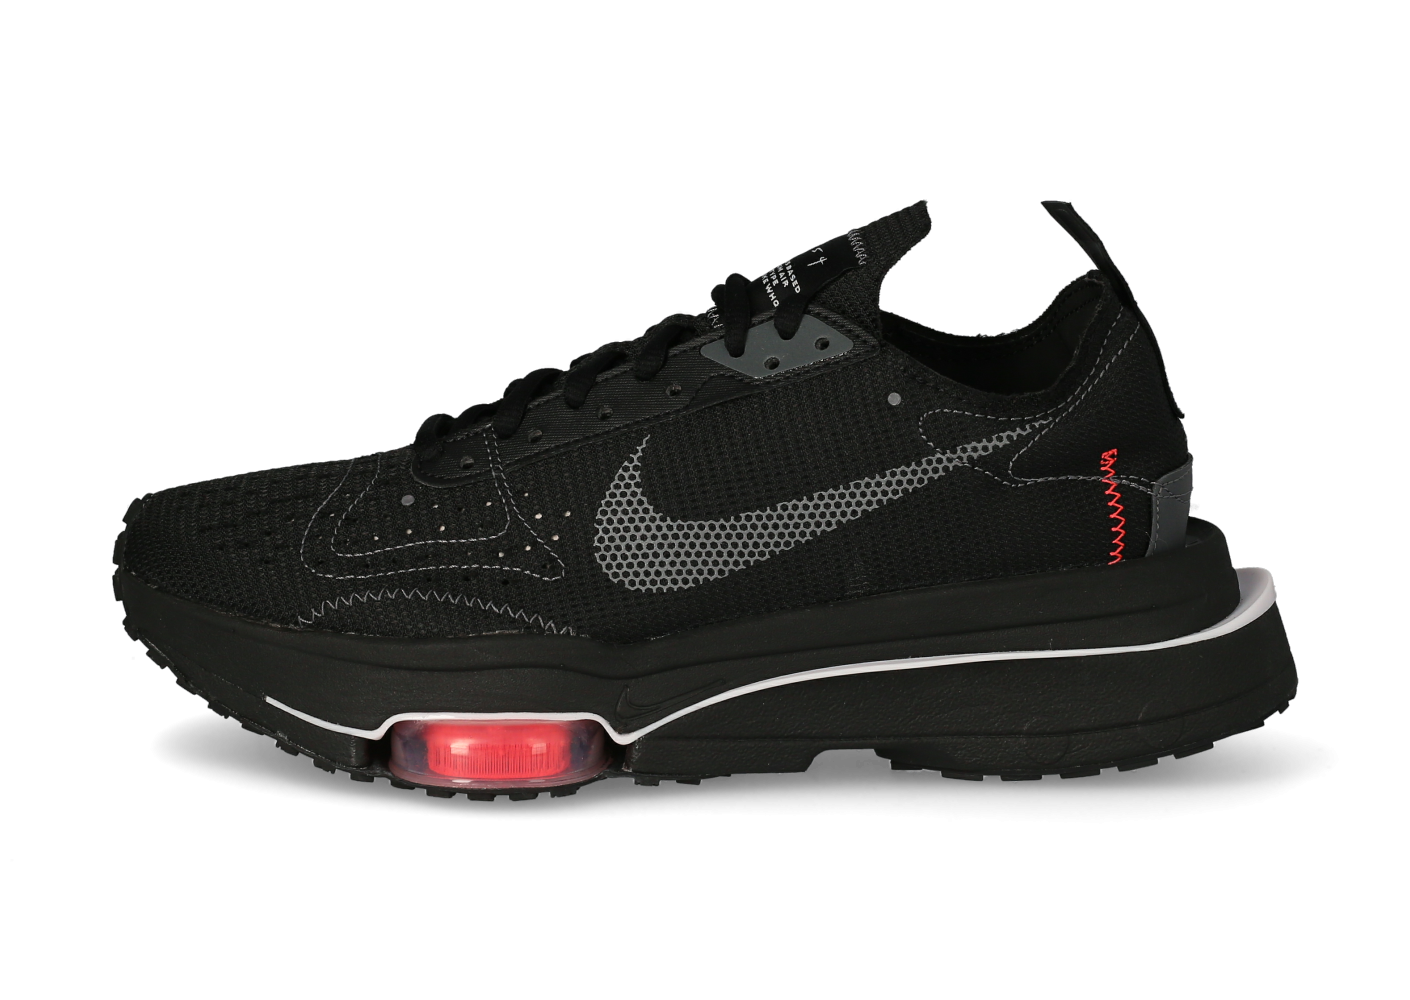 Nike Air Zoom-Type noire et anthracite - Chaussures Baskets homme ...